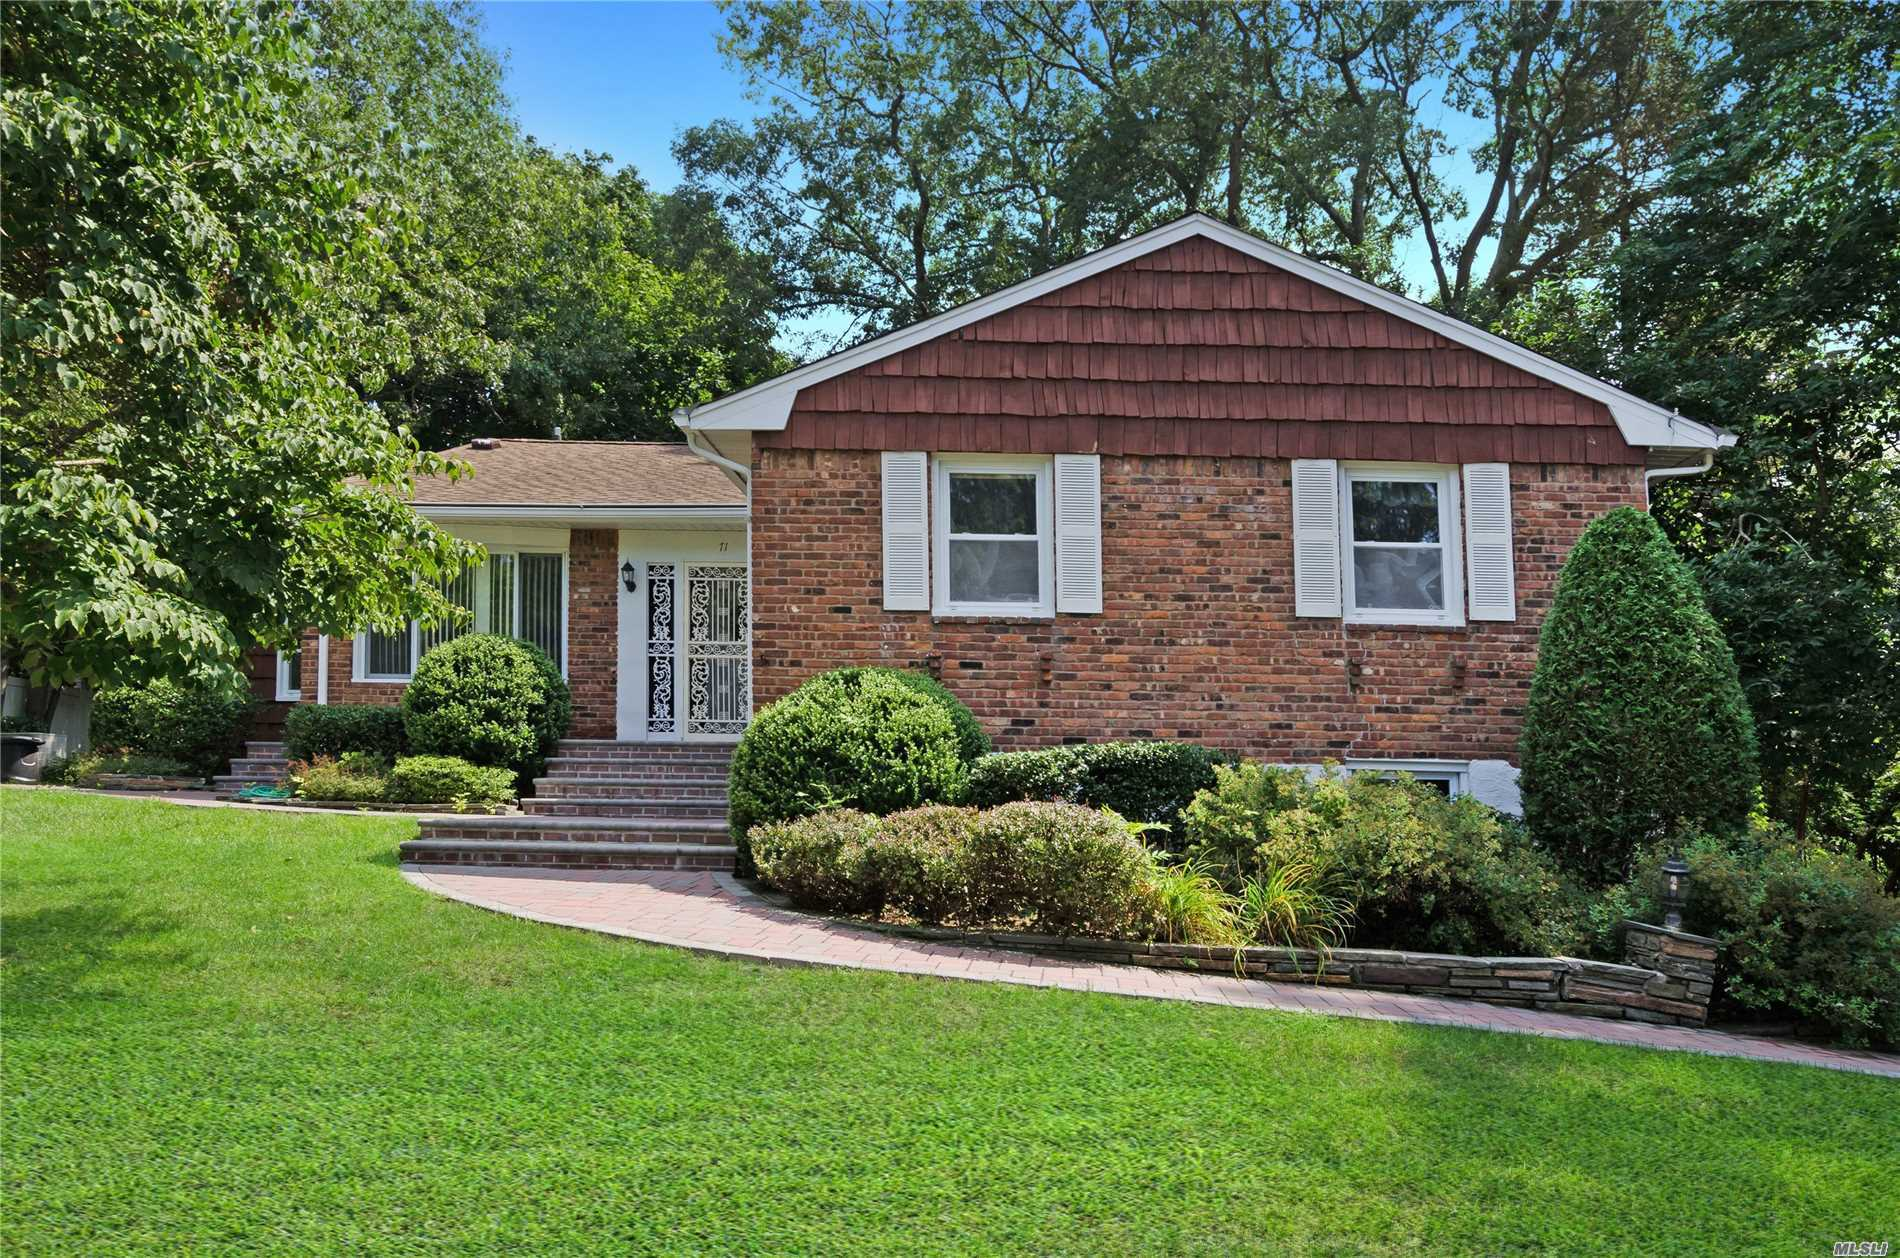 First Time On Market. Sprawling Well Maintained Ranch In Forest Estates. Hardwood Floors Throughout, Many Updates Finished Basement. Close Proximity To Oyster Bay Village, Shopping, And Restaurants. Community Pool (Dues $400) Low Taxes 5900 Without Exemptions.. Oyster Bay-East Norwich School District #6.